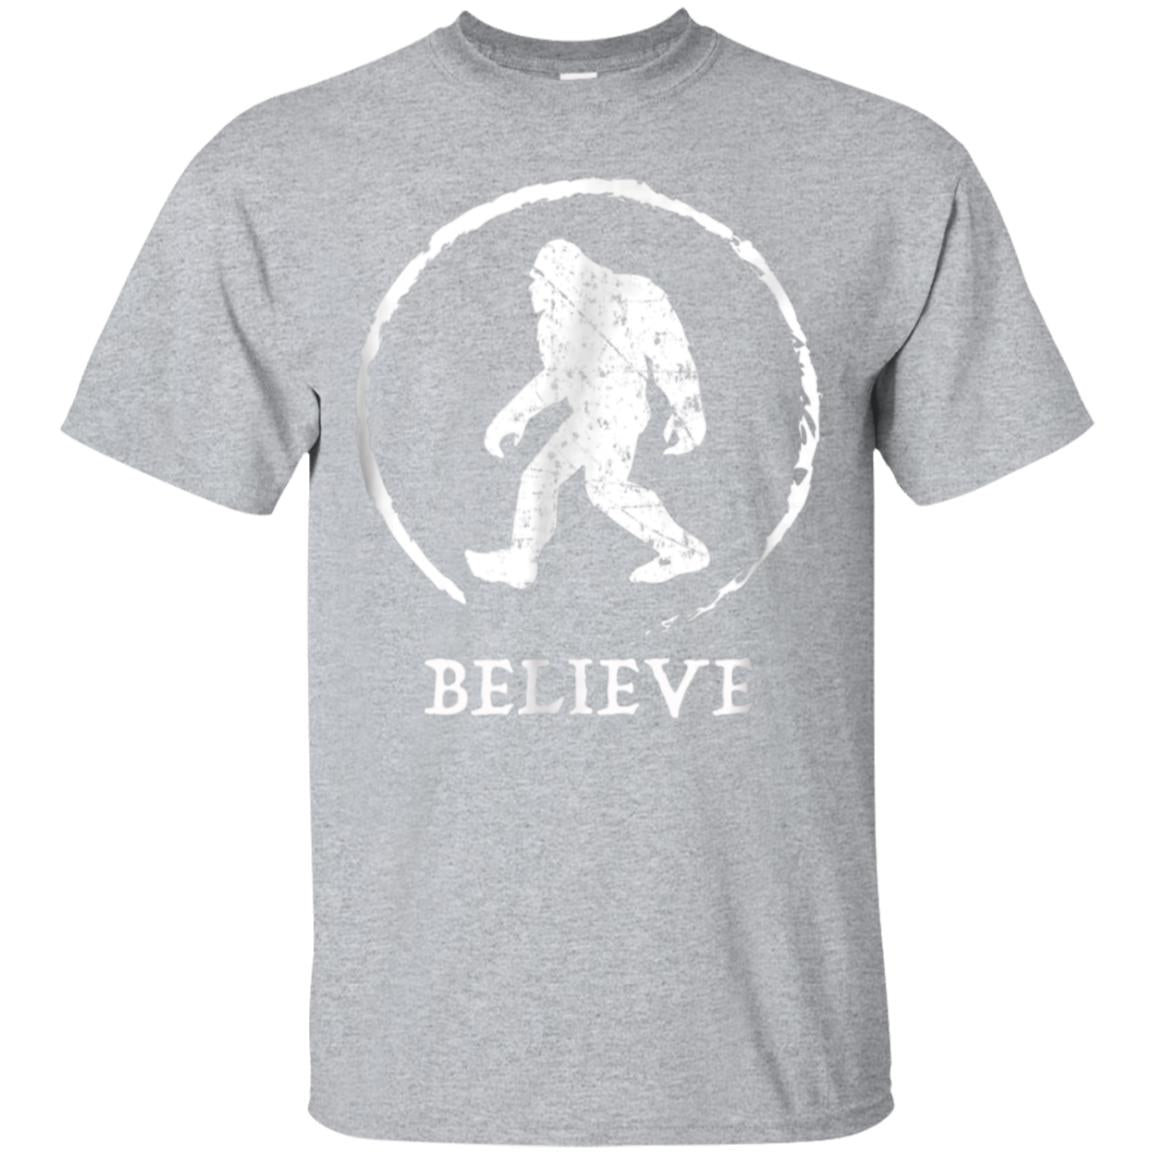 Bigfoot Sasquatch Yeti Believe Tshirt 99promocode